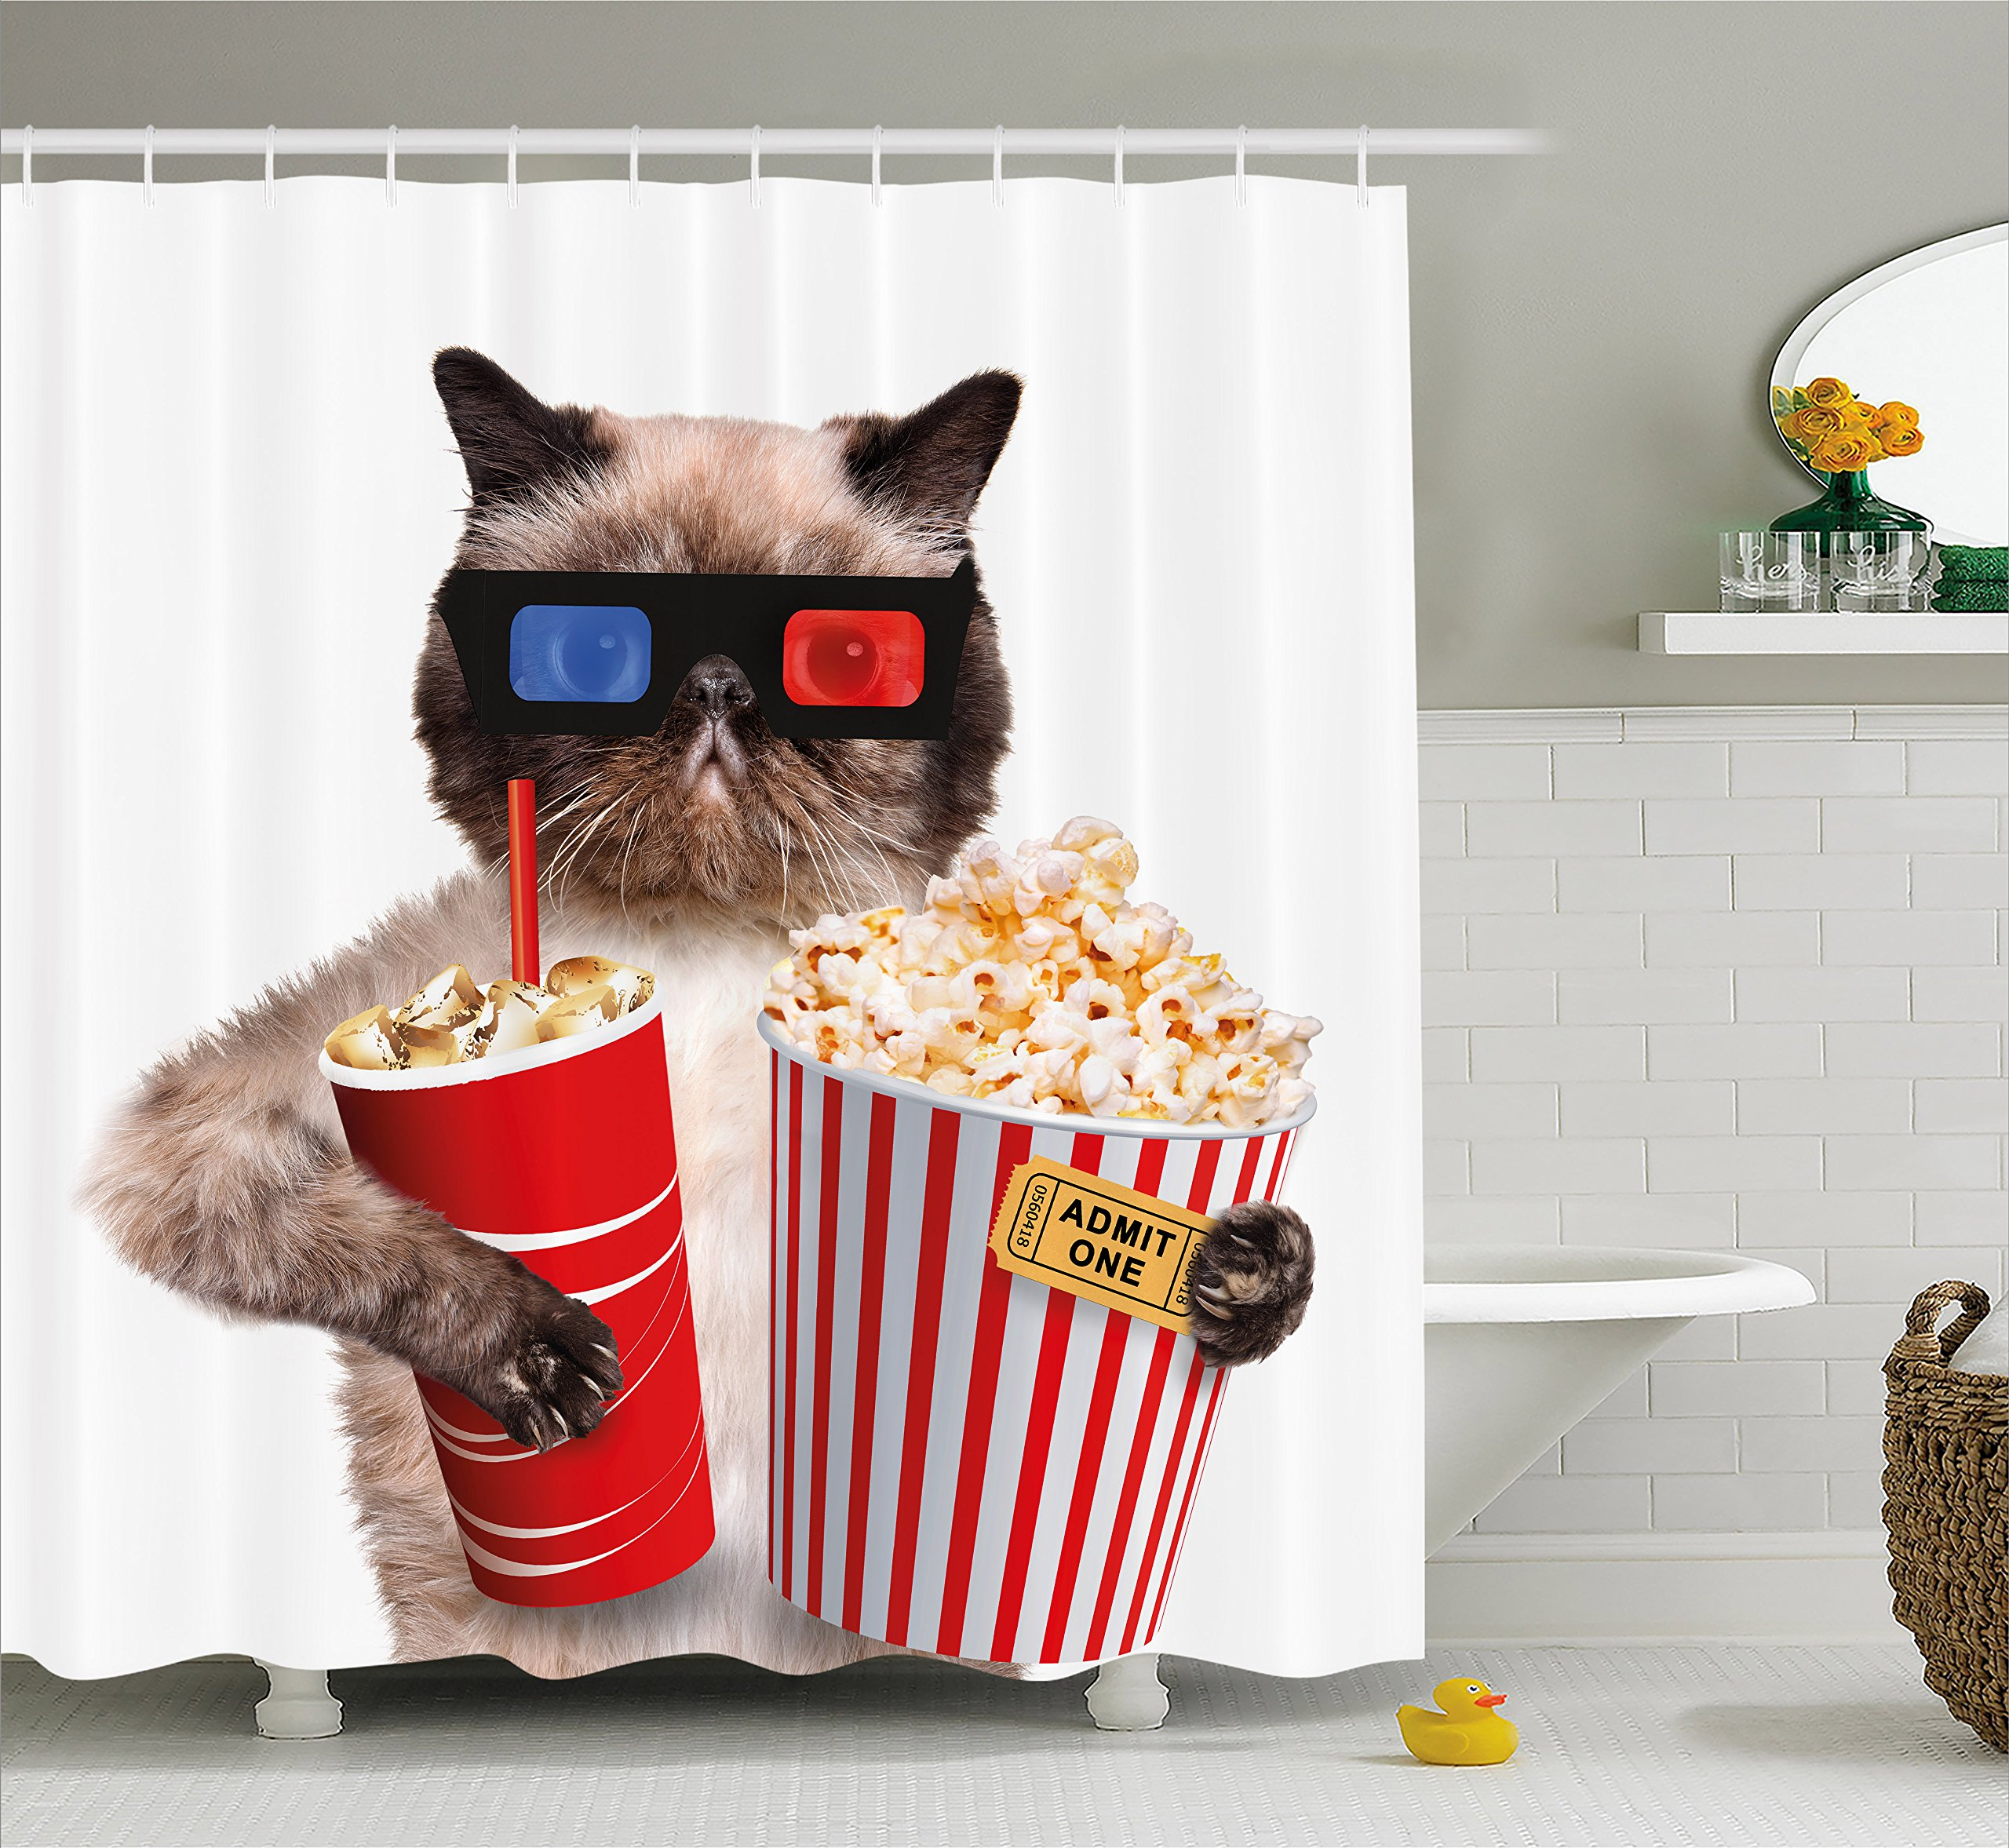 Ambesonne Movie Theater Decor Shower Curtain, Cat with Popcorn and Drink Watching Movie Glasses Entertainment Cinema, Fabric Bathroom Decor Set with Hooks, 70 Inches, Multicolor